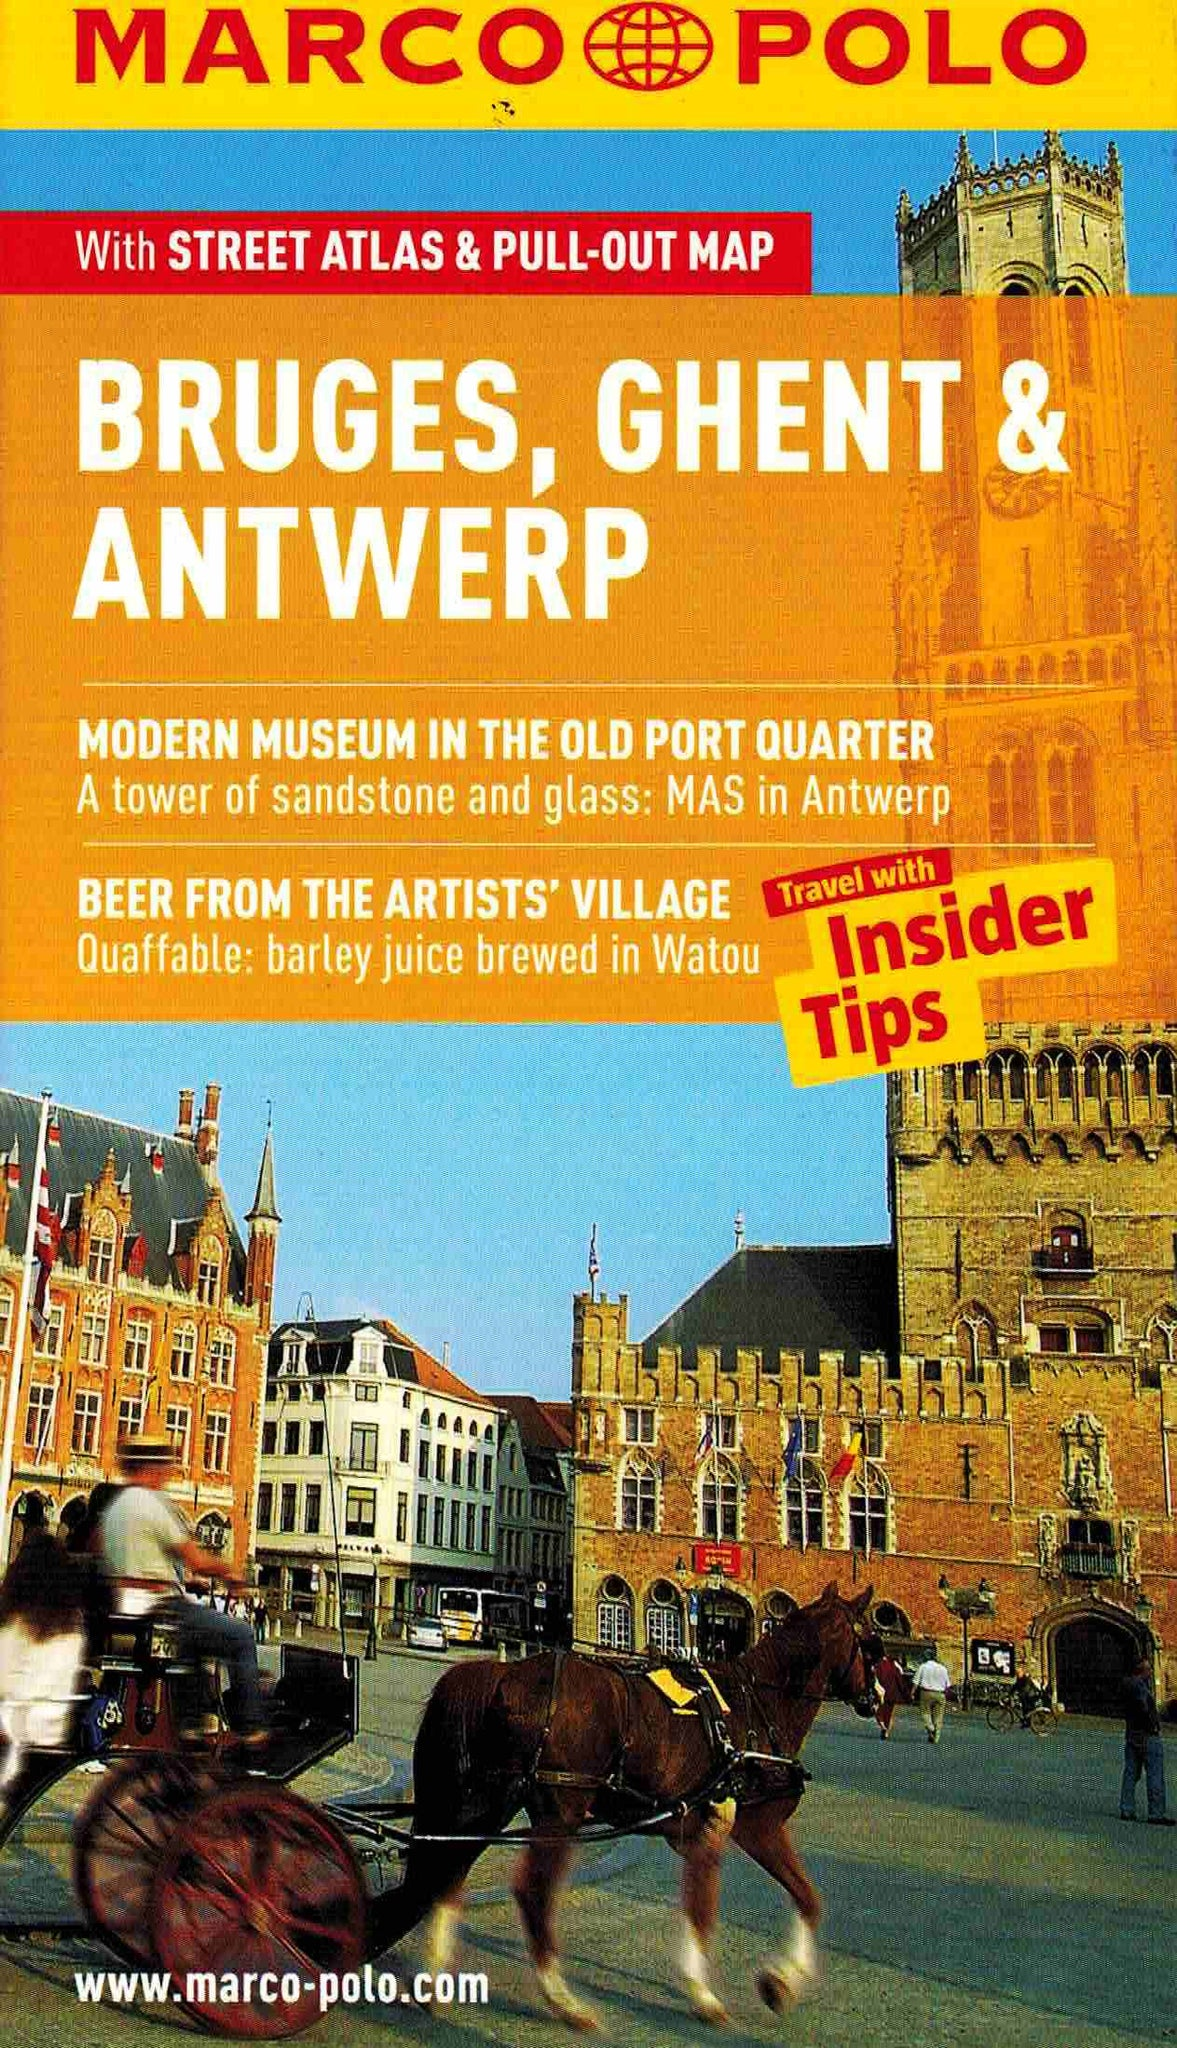 Marco Polo Bruges Ghent and Antwerp Guide ISBN9783829707442